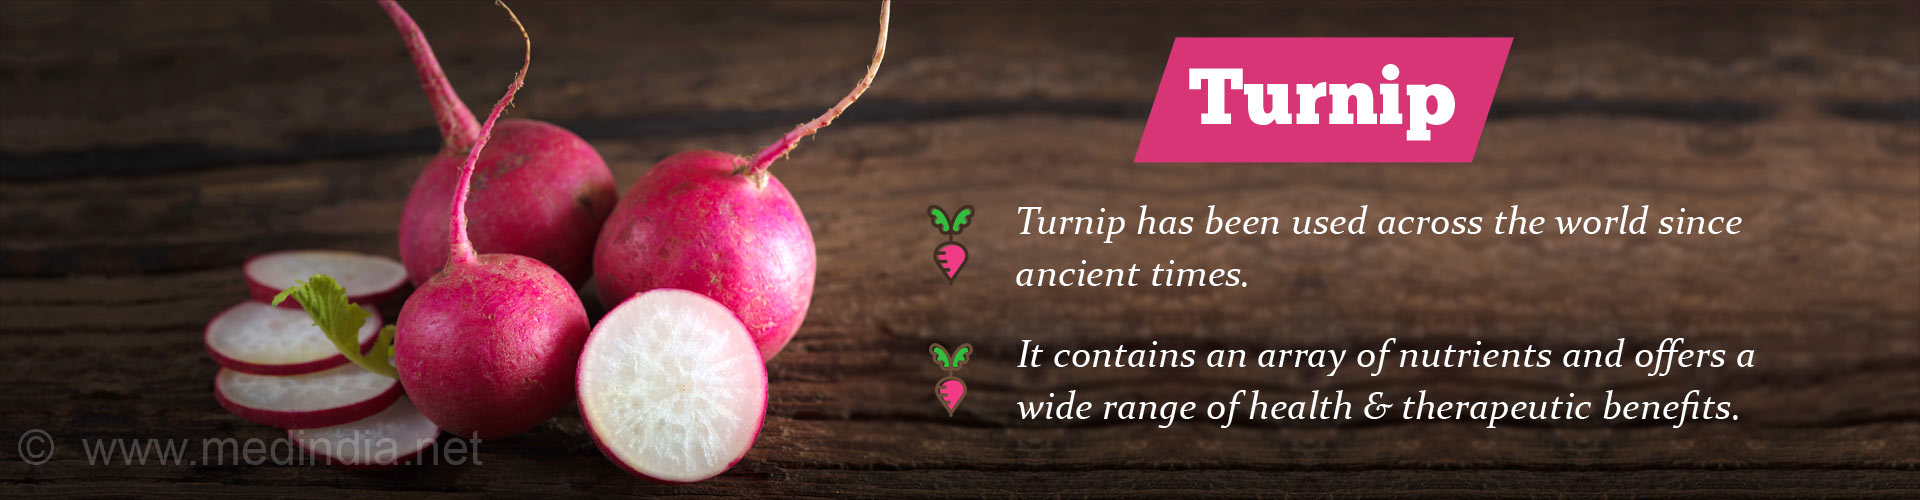 Top 10 Health Benefits of Turnip